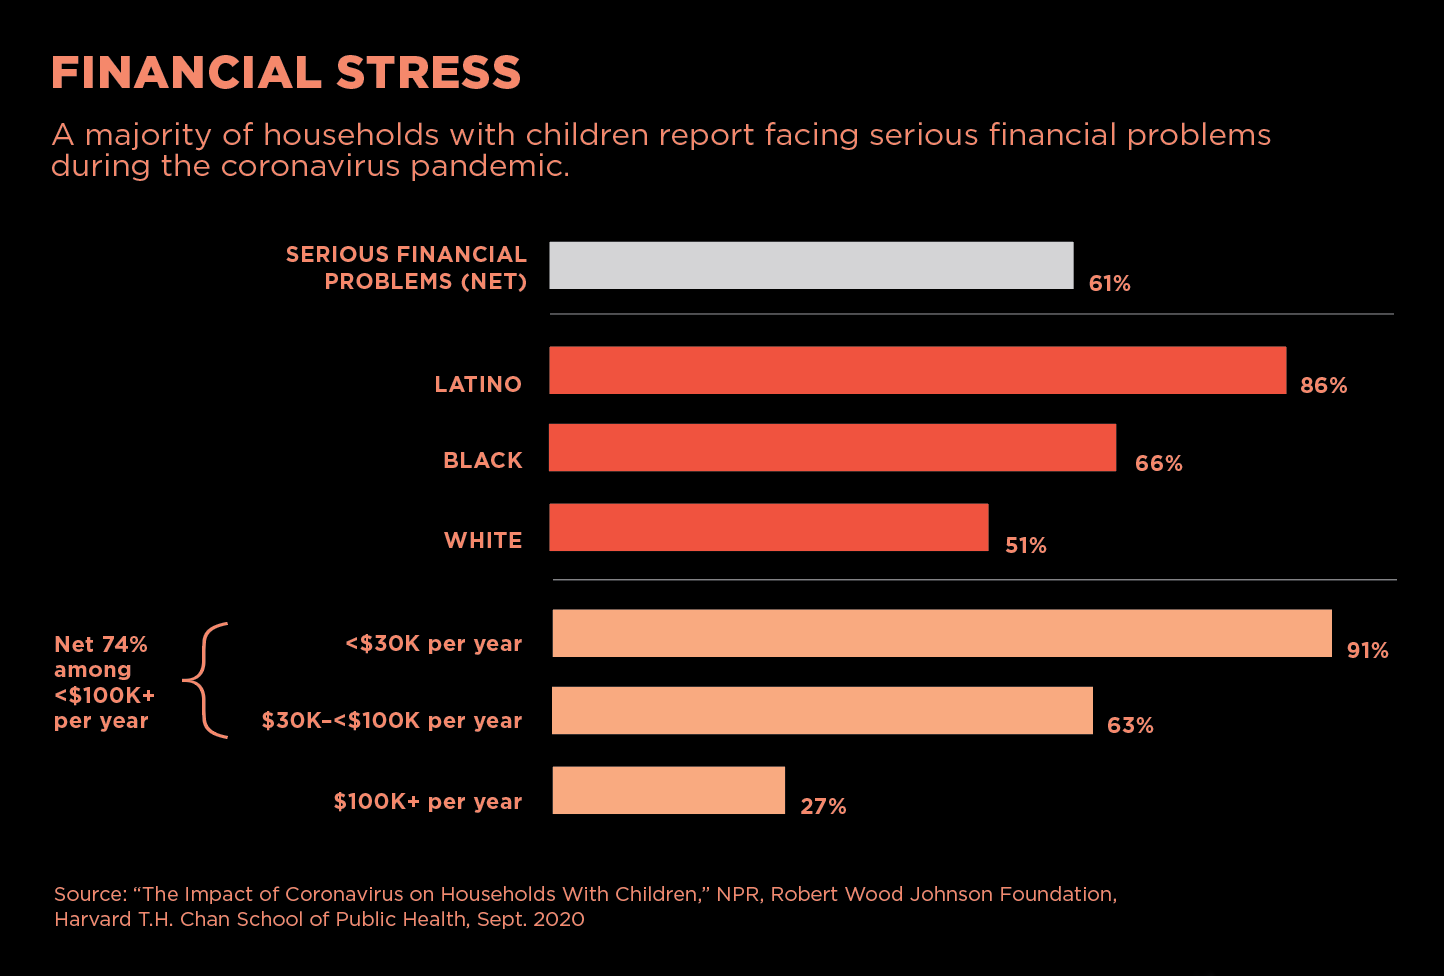 Financial Stress: A majority (61%) of households with children report facing serious financial problems during the pandemic. This percentage is markedly higher for Latinos (86%) and Blacks (66%); and higher for lower income households: 91% for those earning under $30k per year, while stress was reported by only 27% of households earning more than $100k per year.